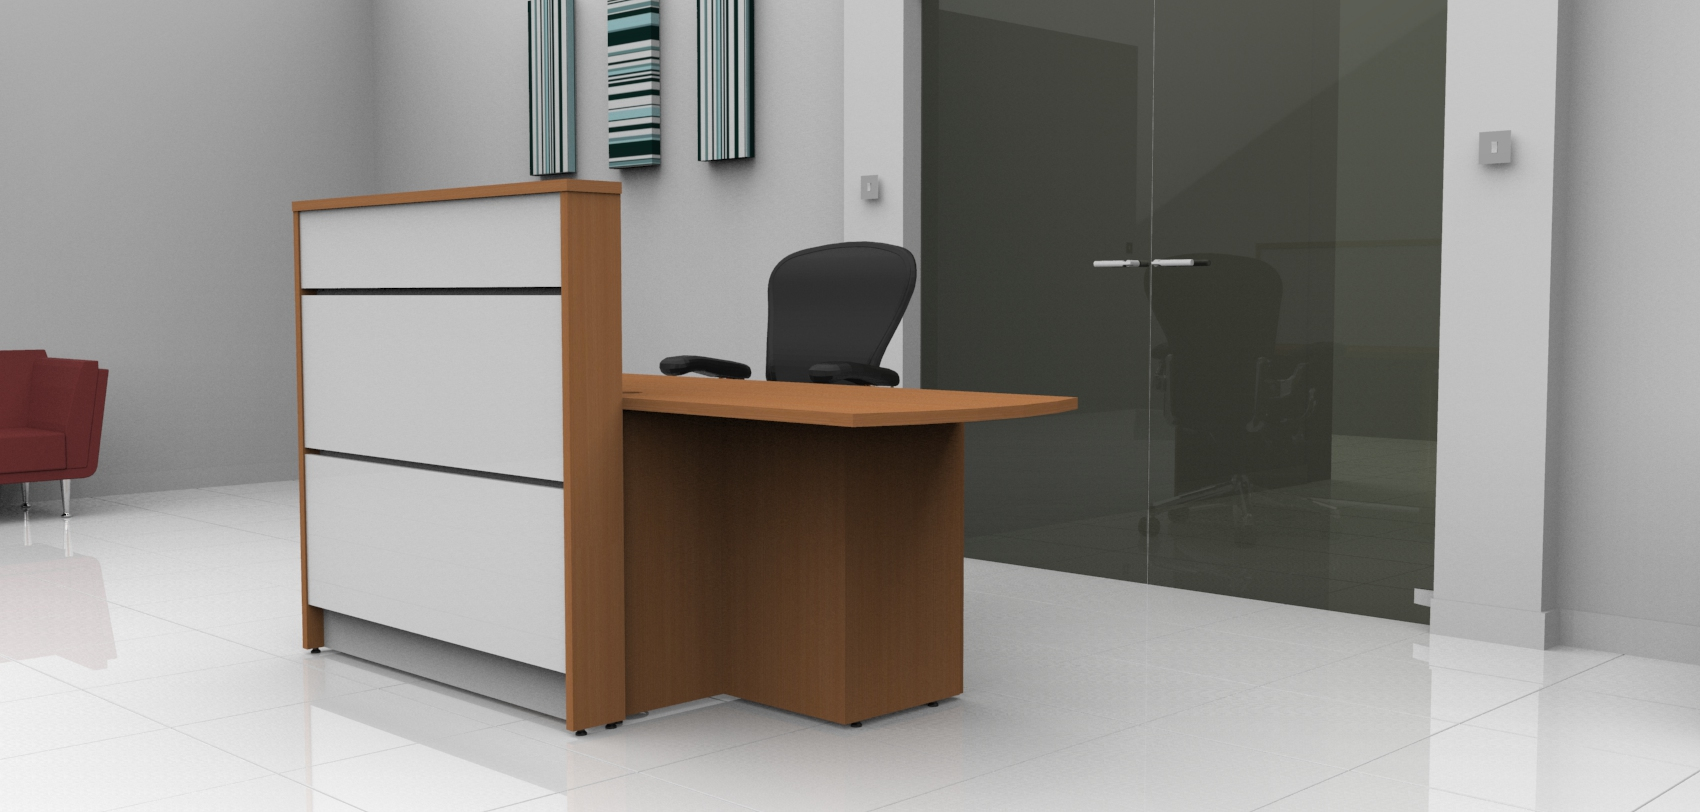 Image U1- Tall Union Compact reception desk finished in Beech and White